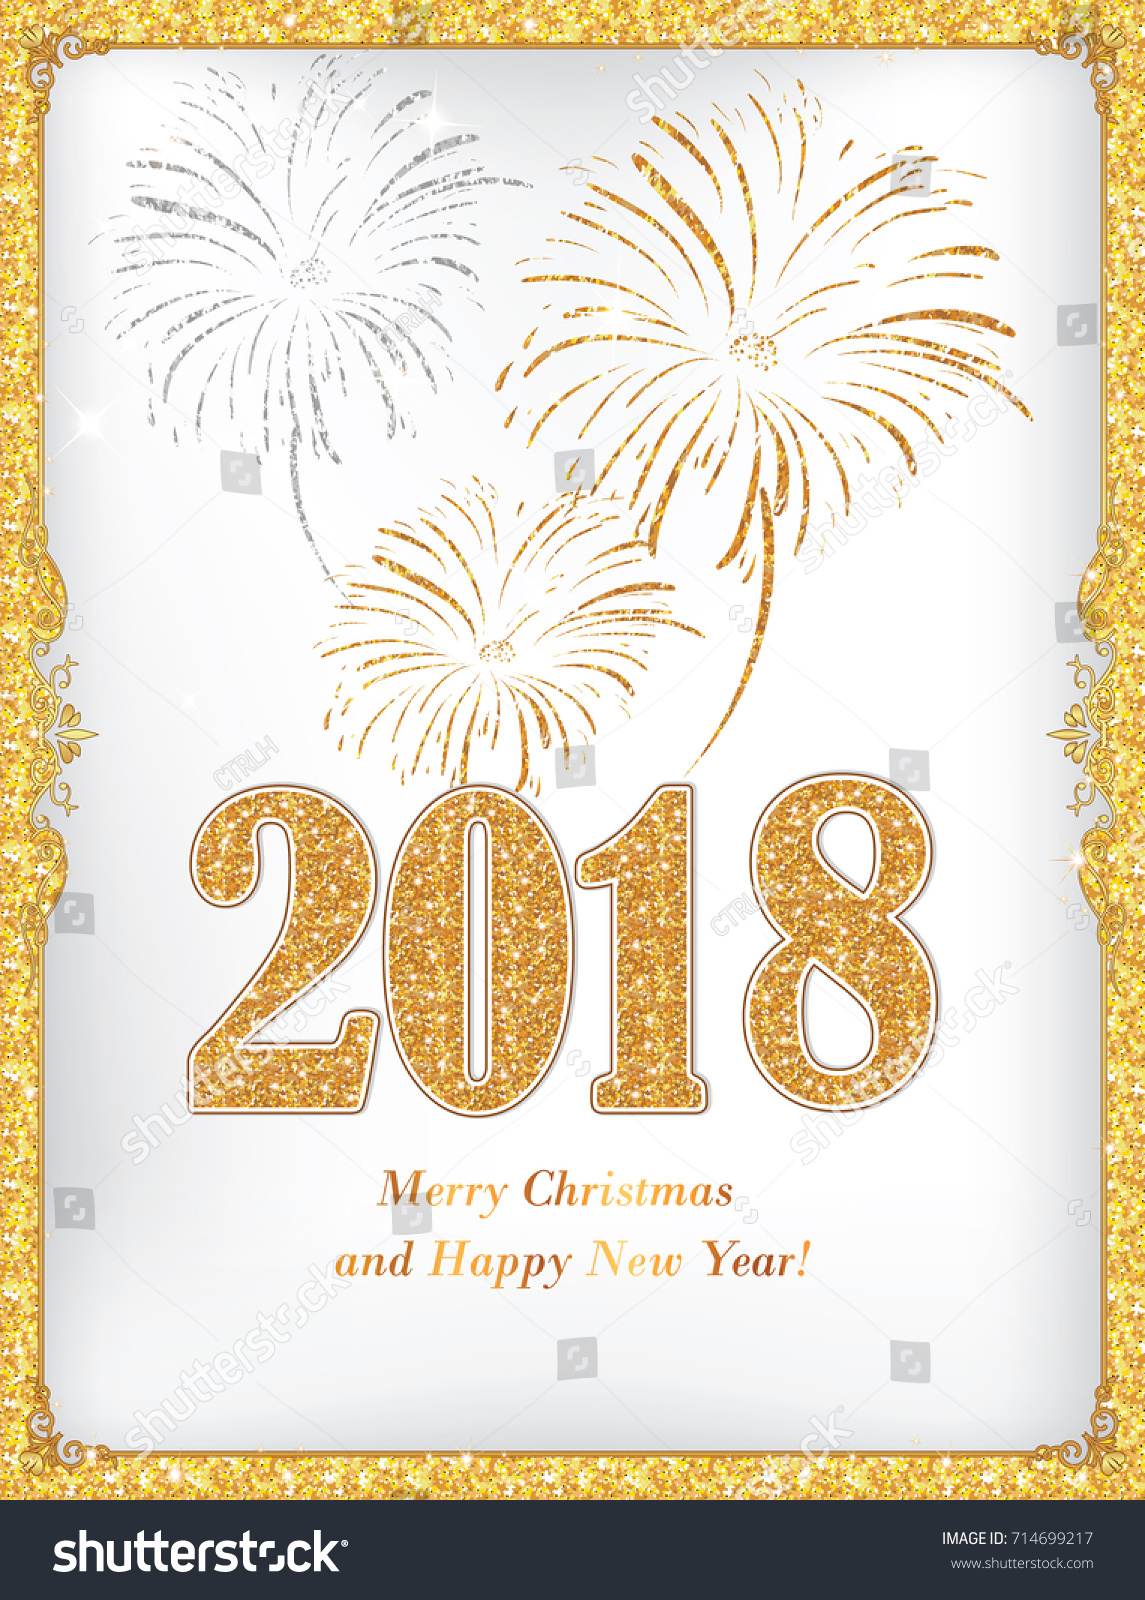 merry christmas and happy new year 2018 golden white elegant greeting card also for